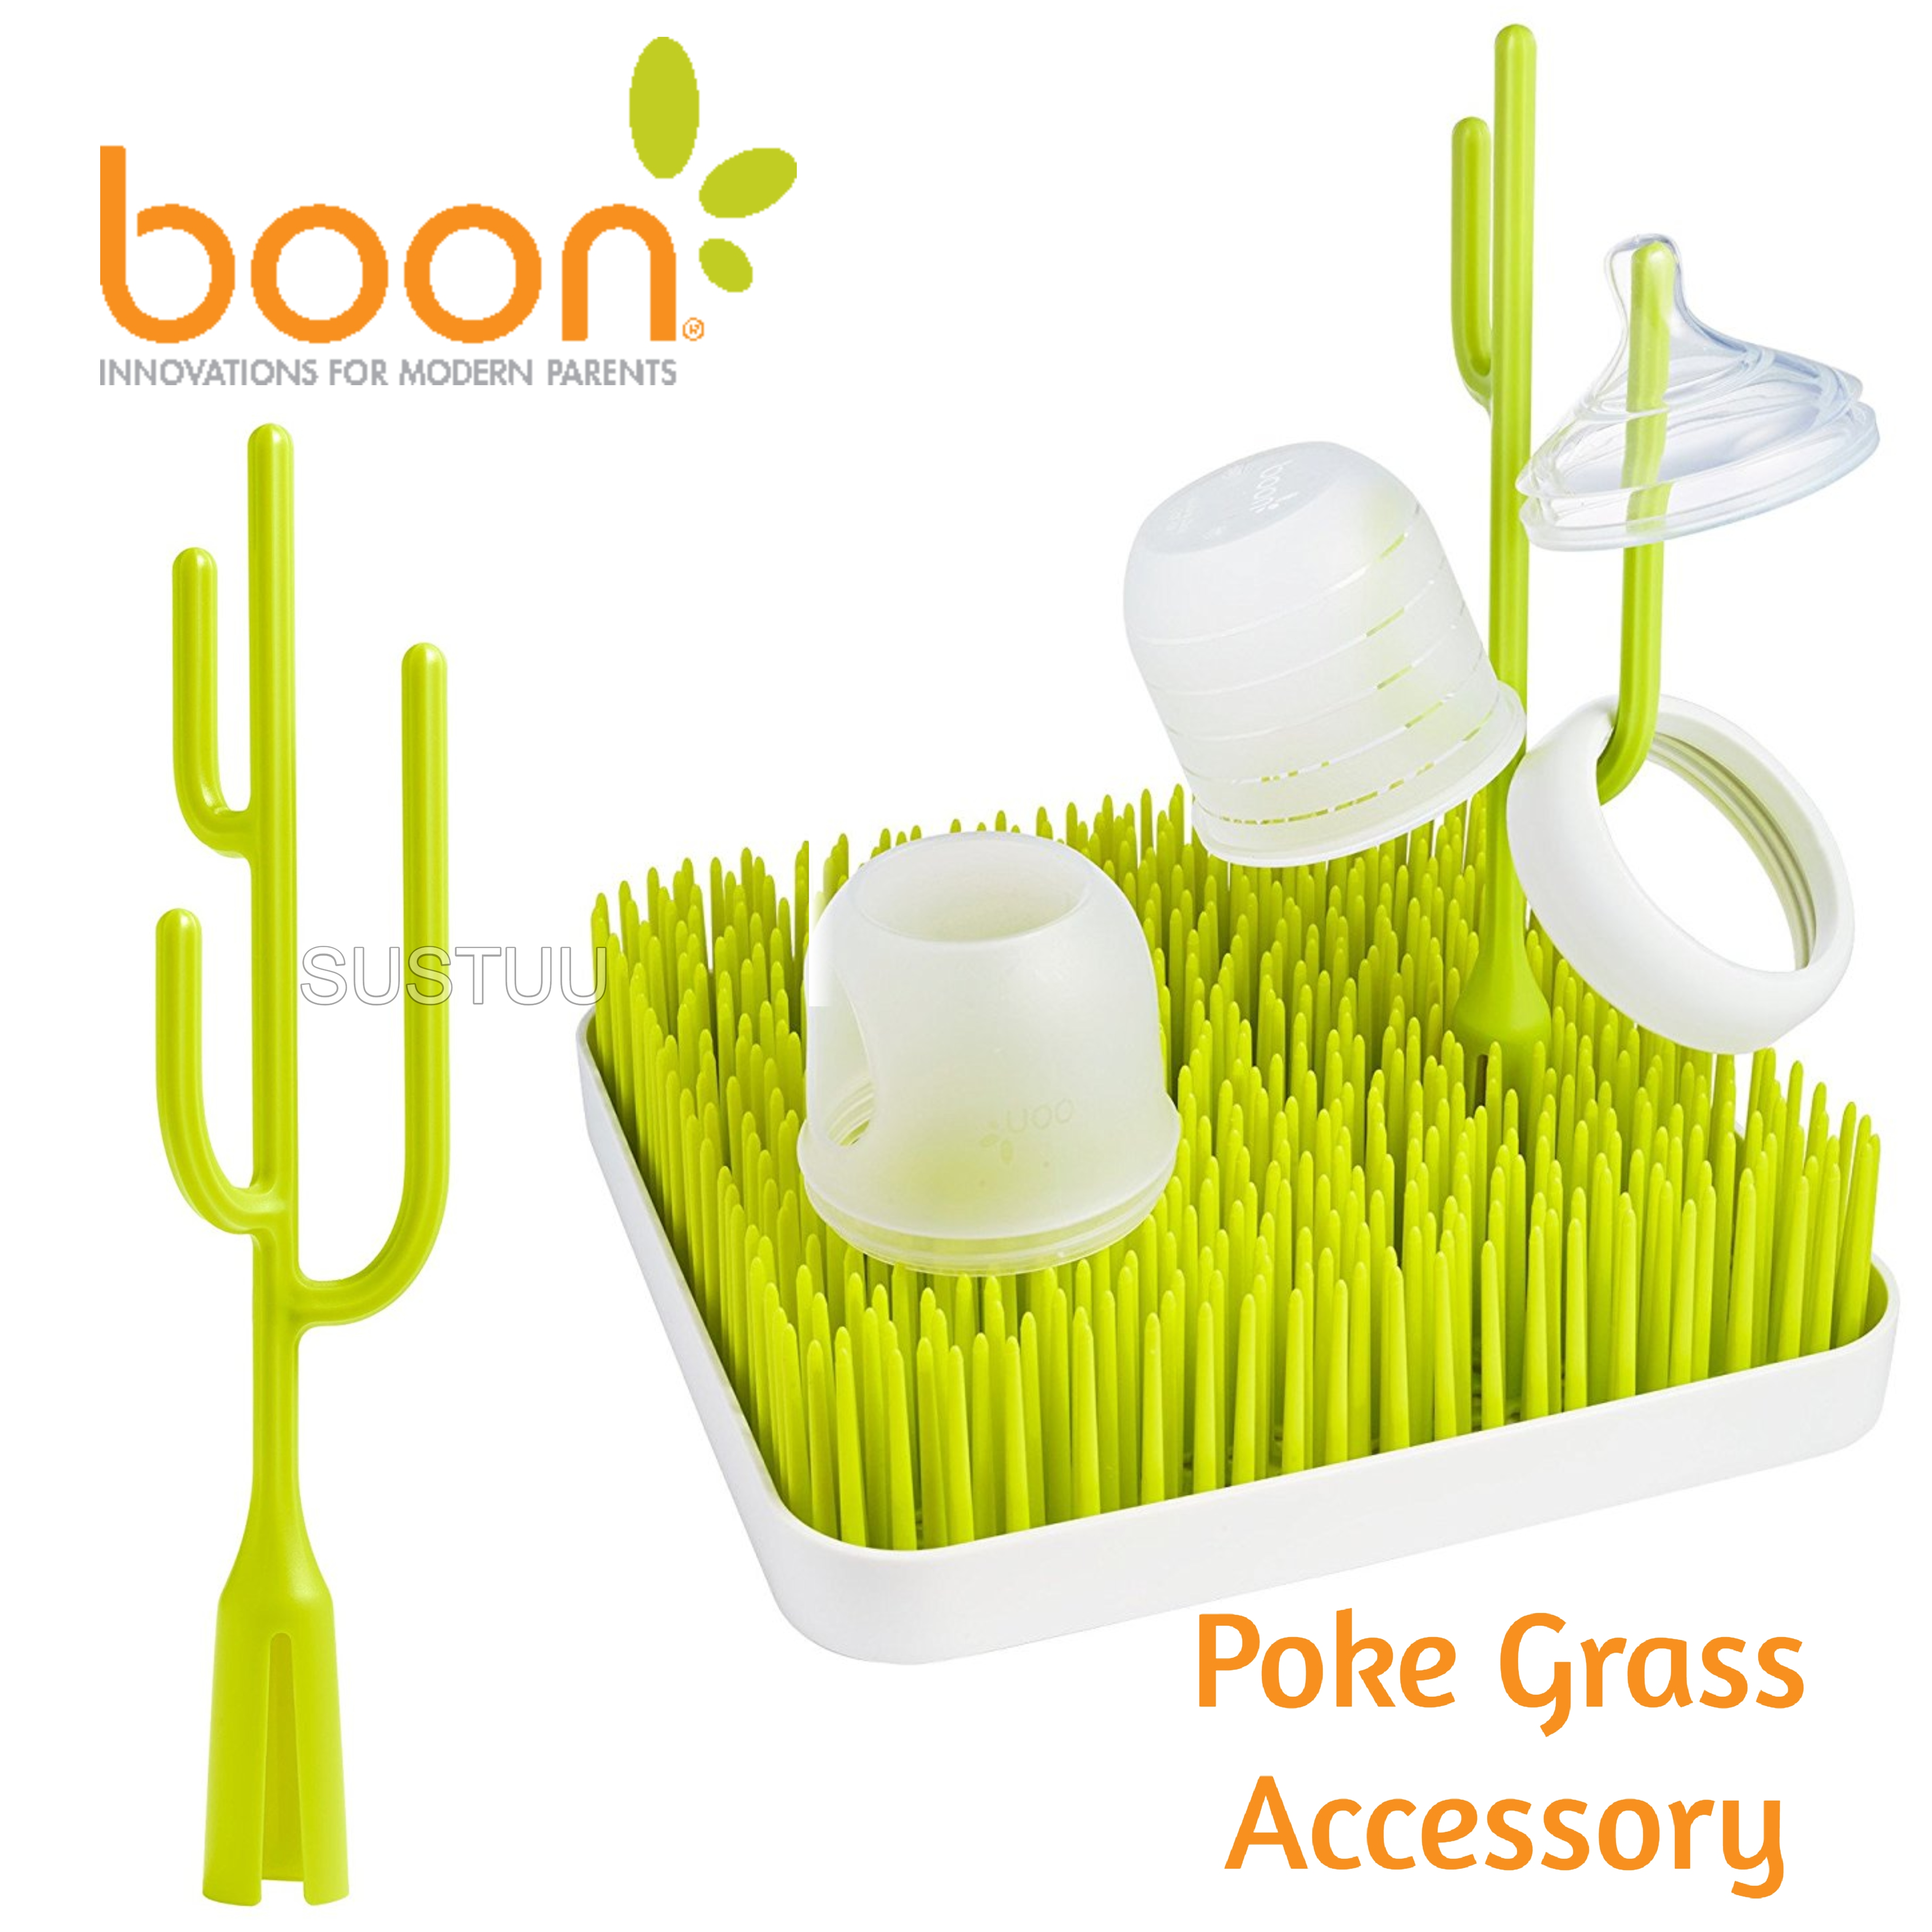 Boon POKE Grass Accessory|Kid's Bottles / Cups / Small Sippy Holder|BPA Free|New